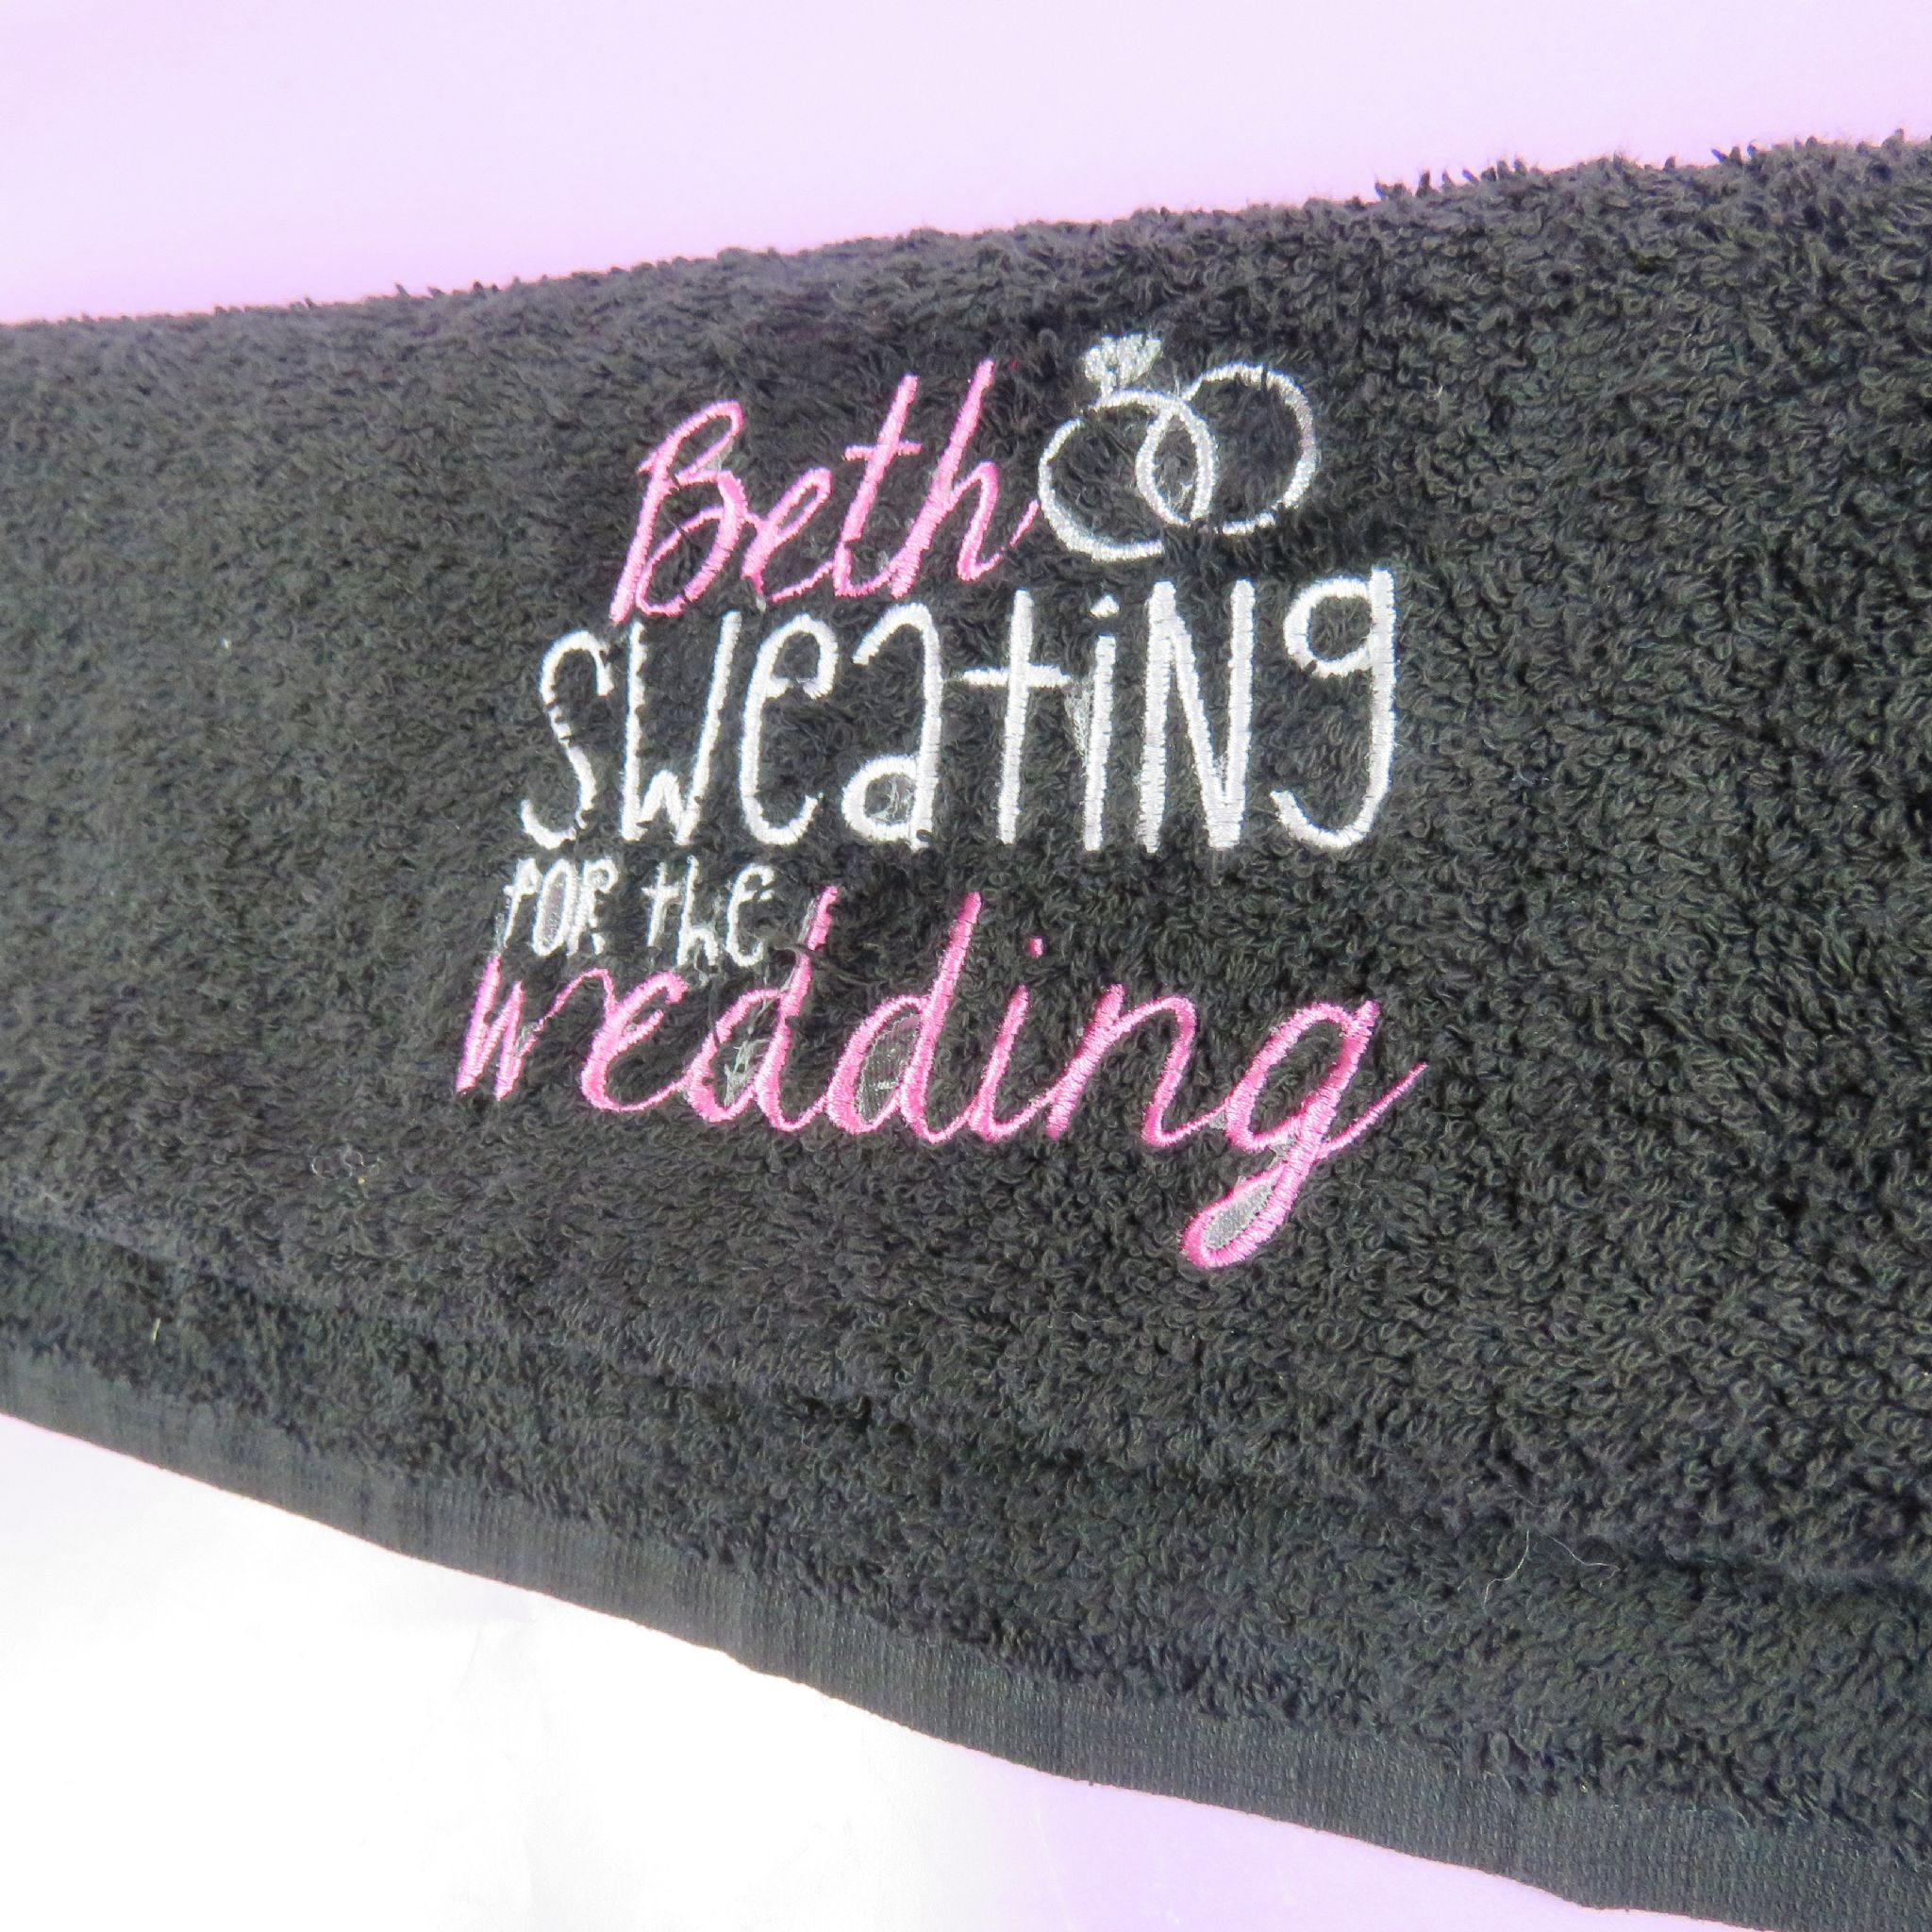 Embroidered Towels For Wedding Gift: Personalised Sweating For The Wedding Towel Embroidered